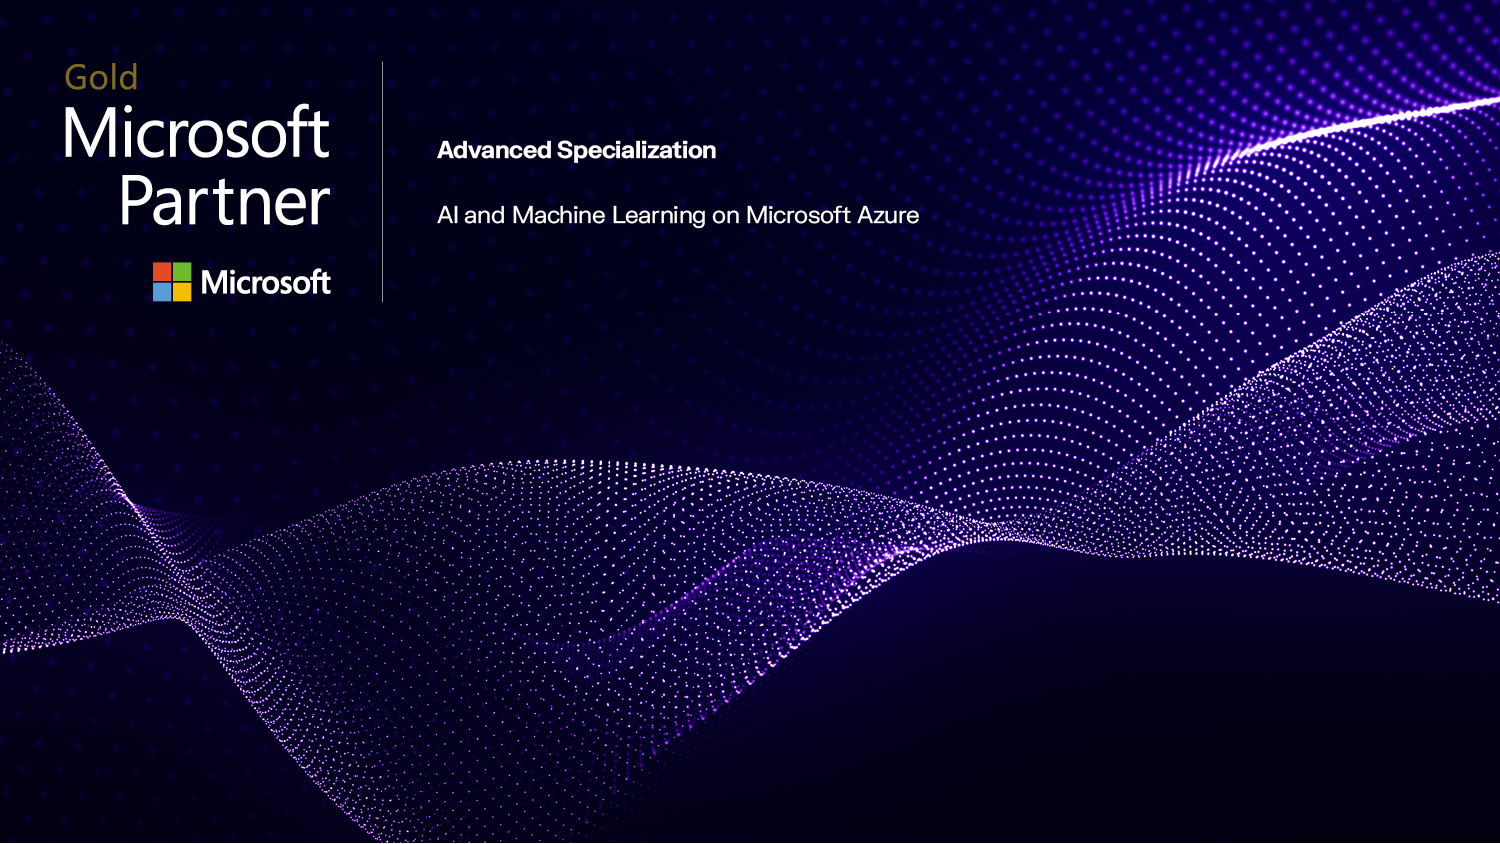 As one of the first partners Nexer Insights earned the AI and Machine Learning on Microsoft Azure advanced specialization